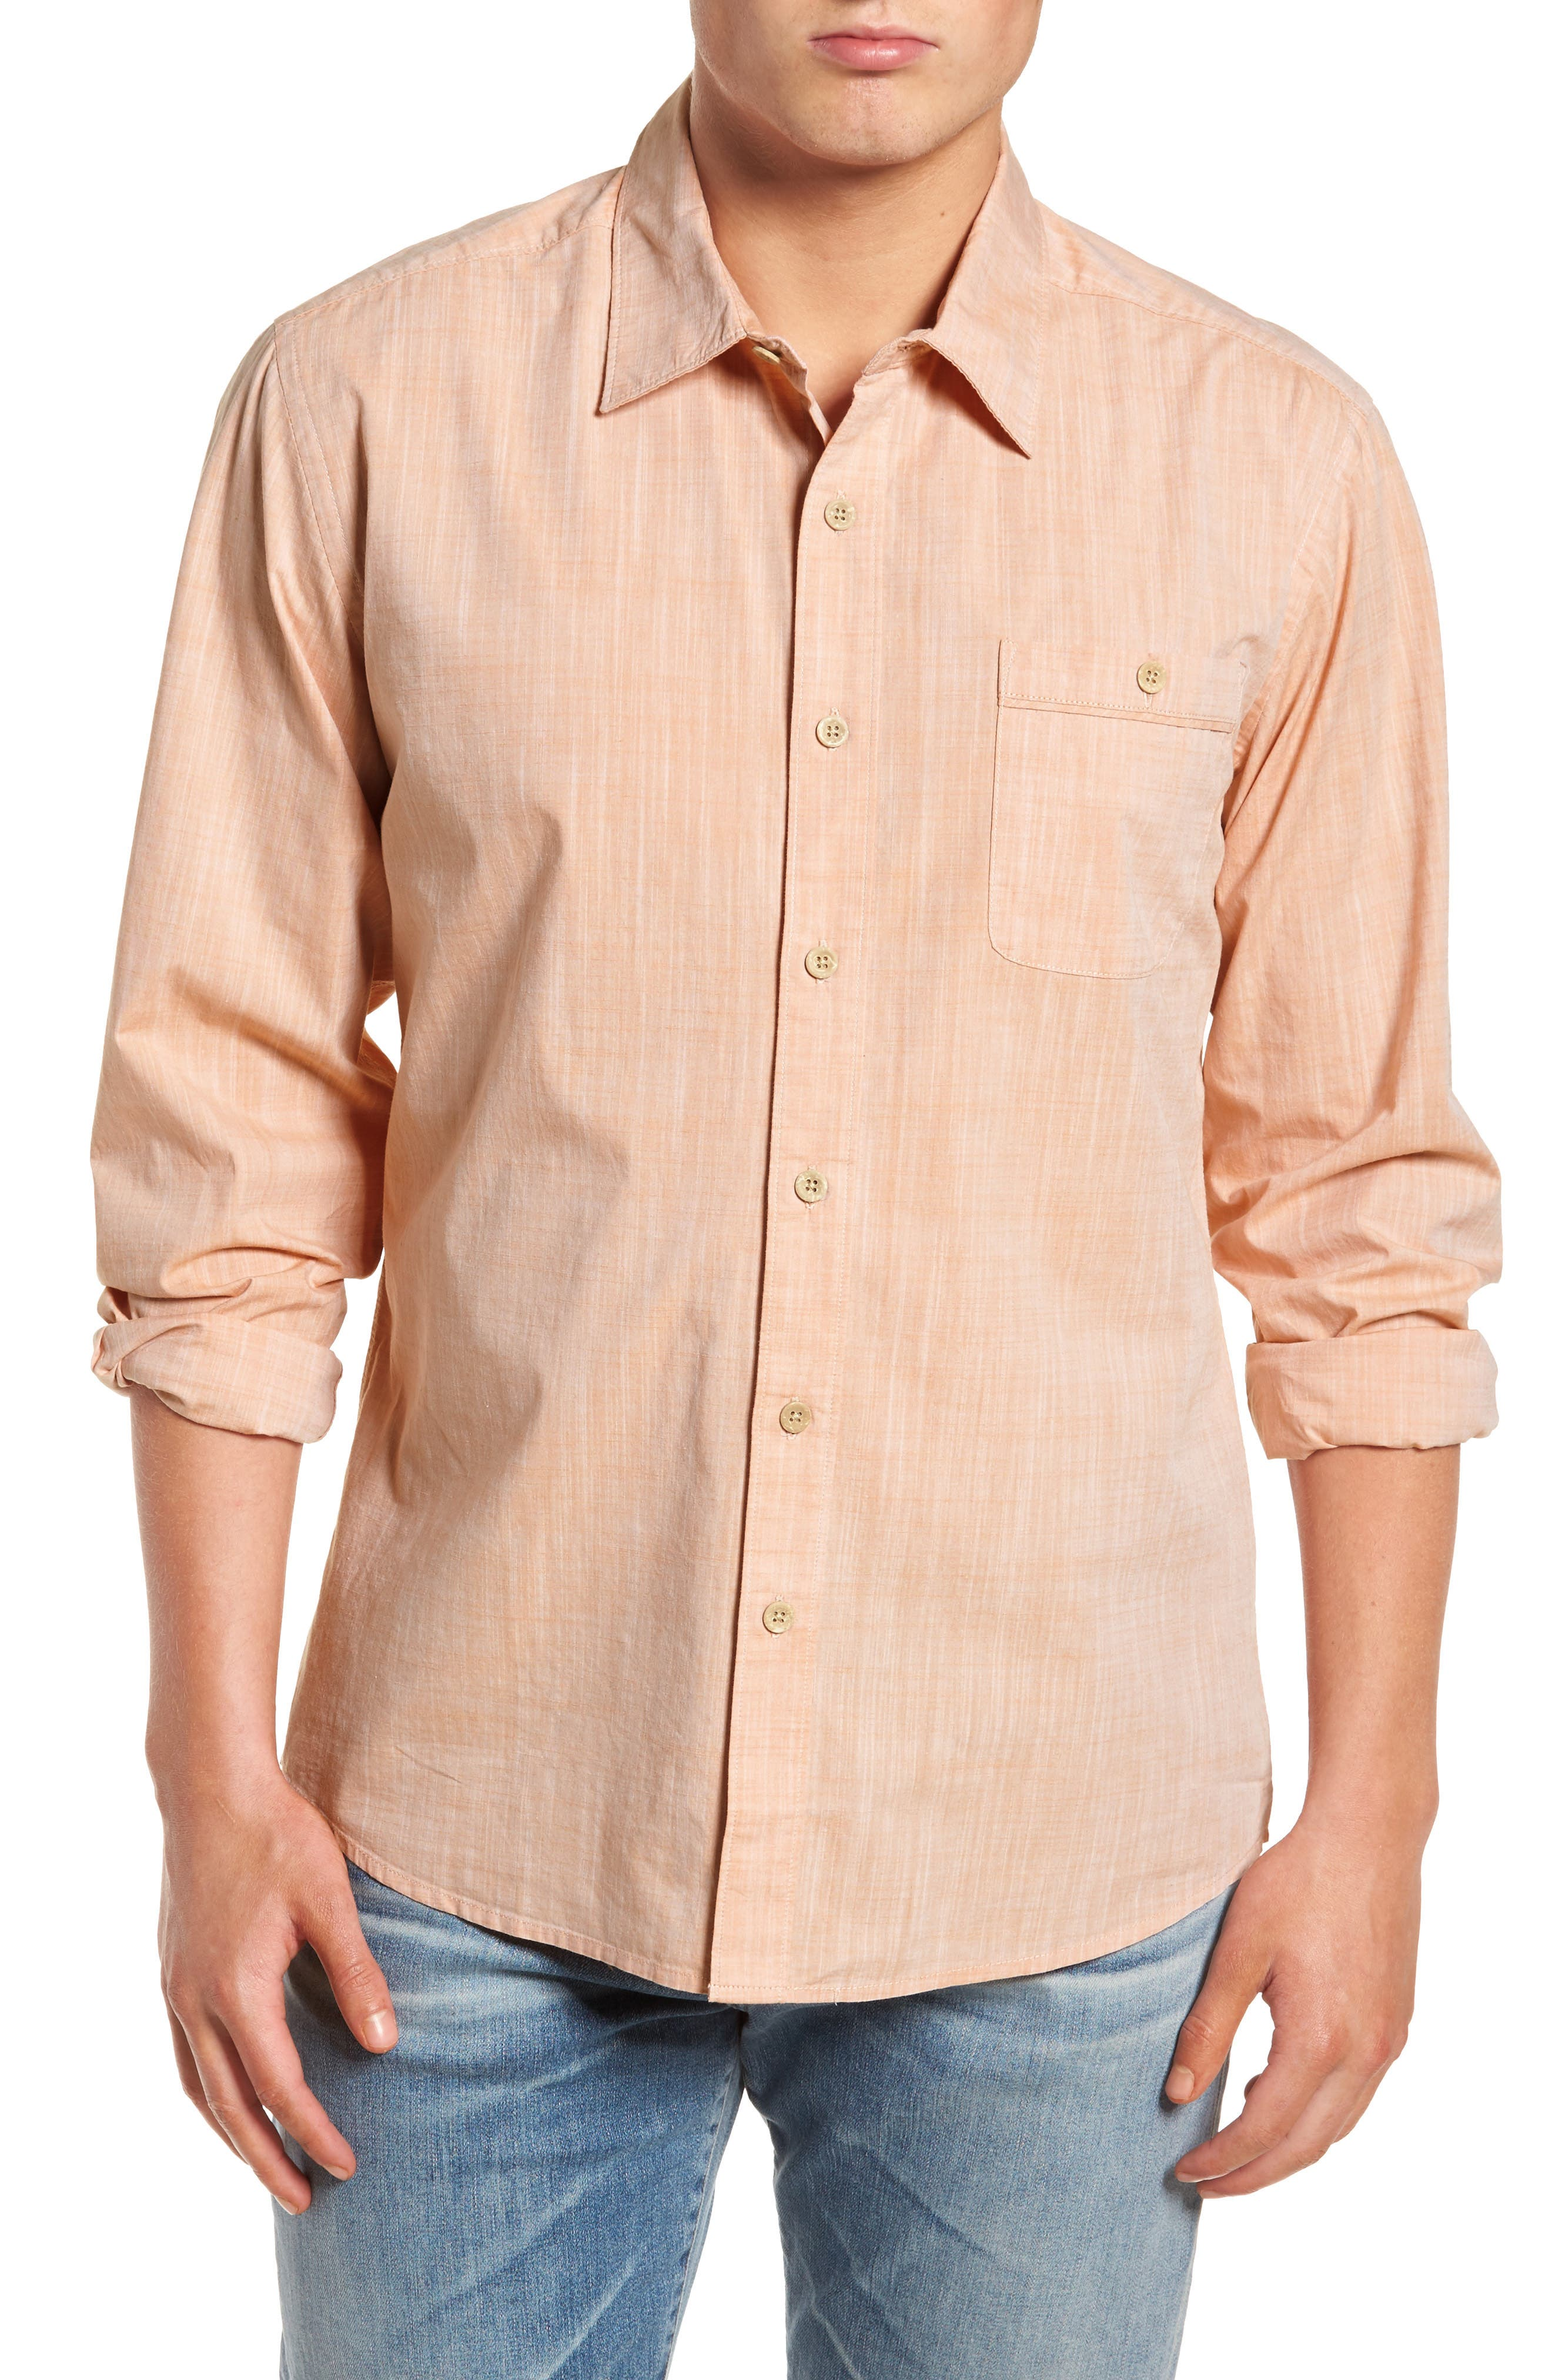 Mai Tai Regular Fit Sport Shirt,                             Main thumbnail 1, color,                             Papaya